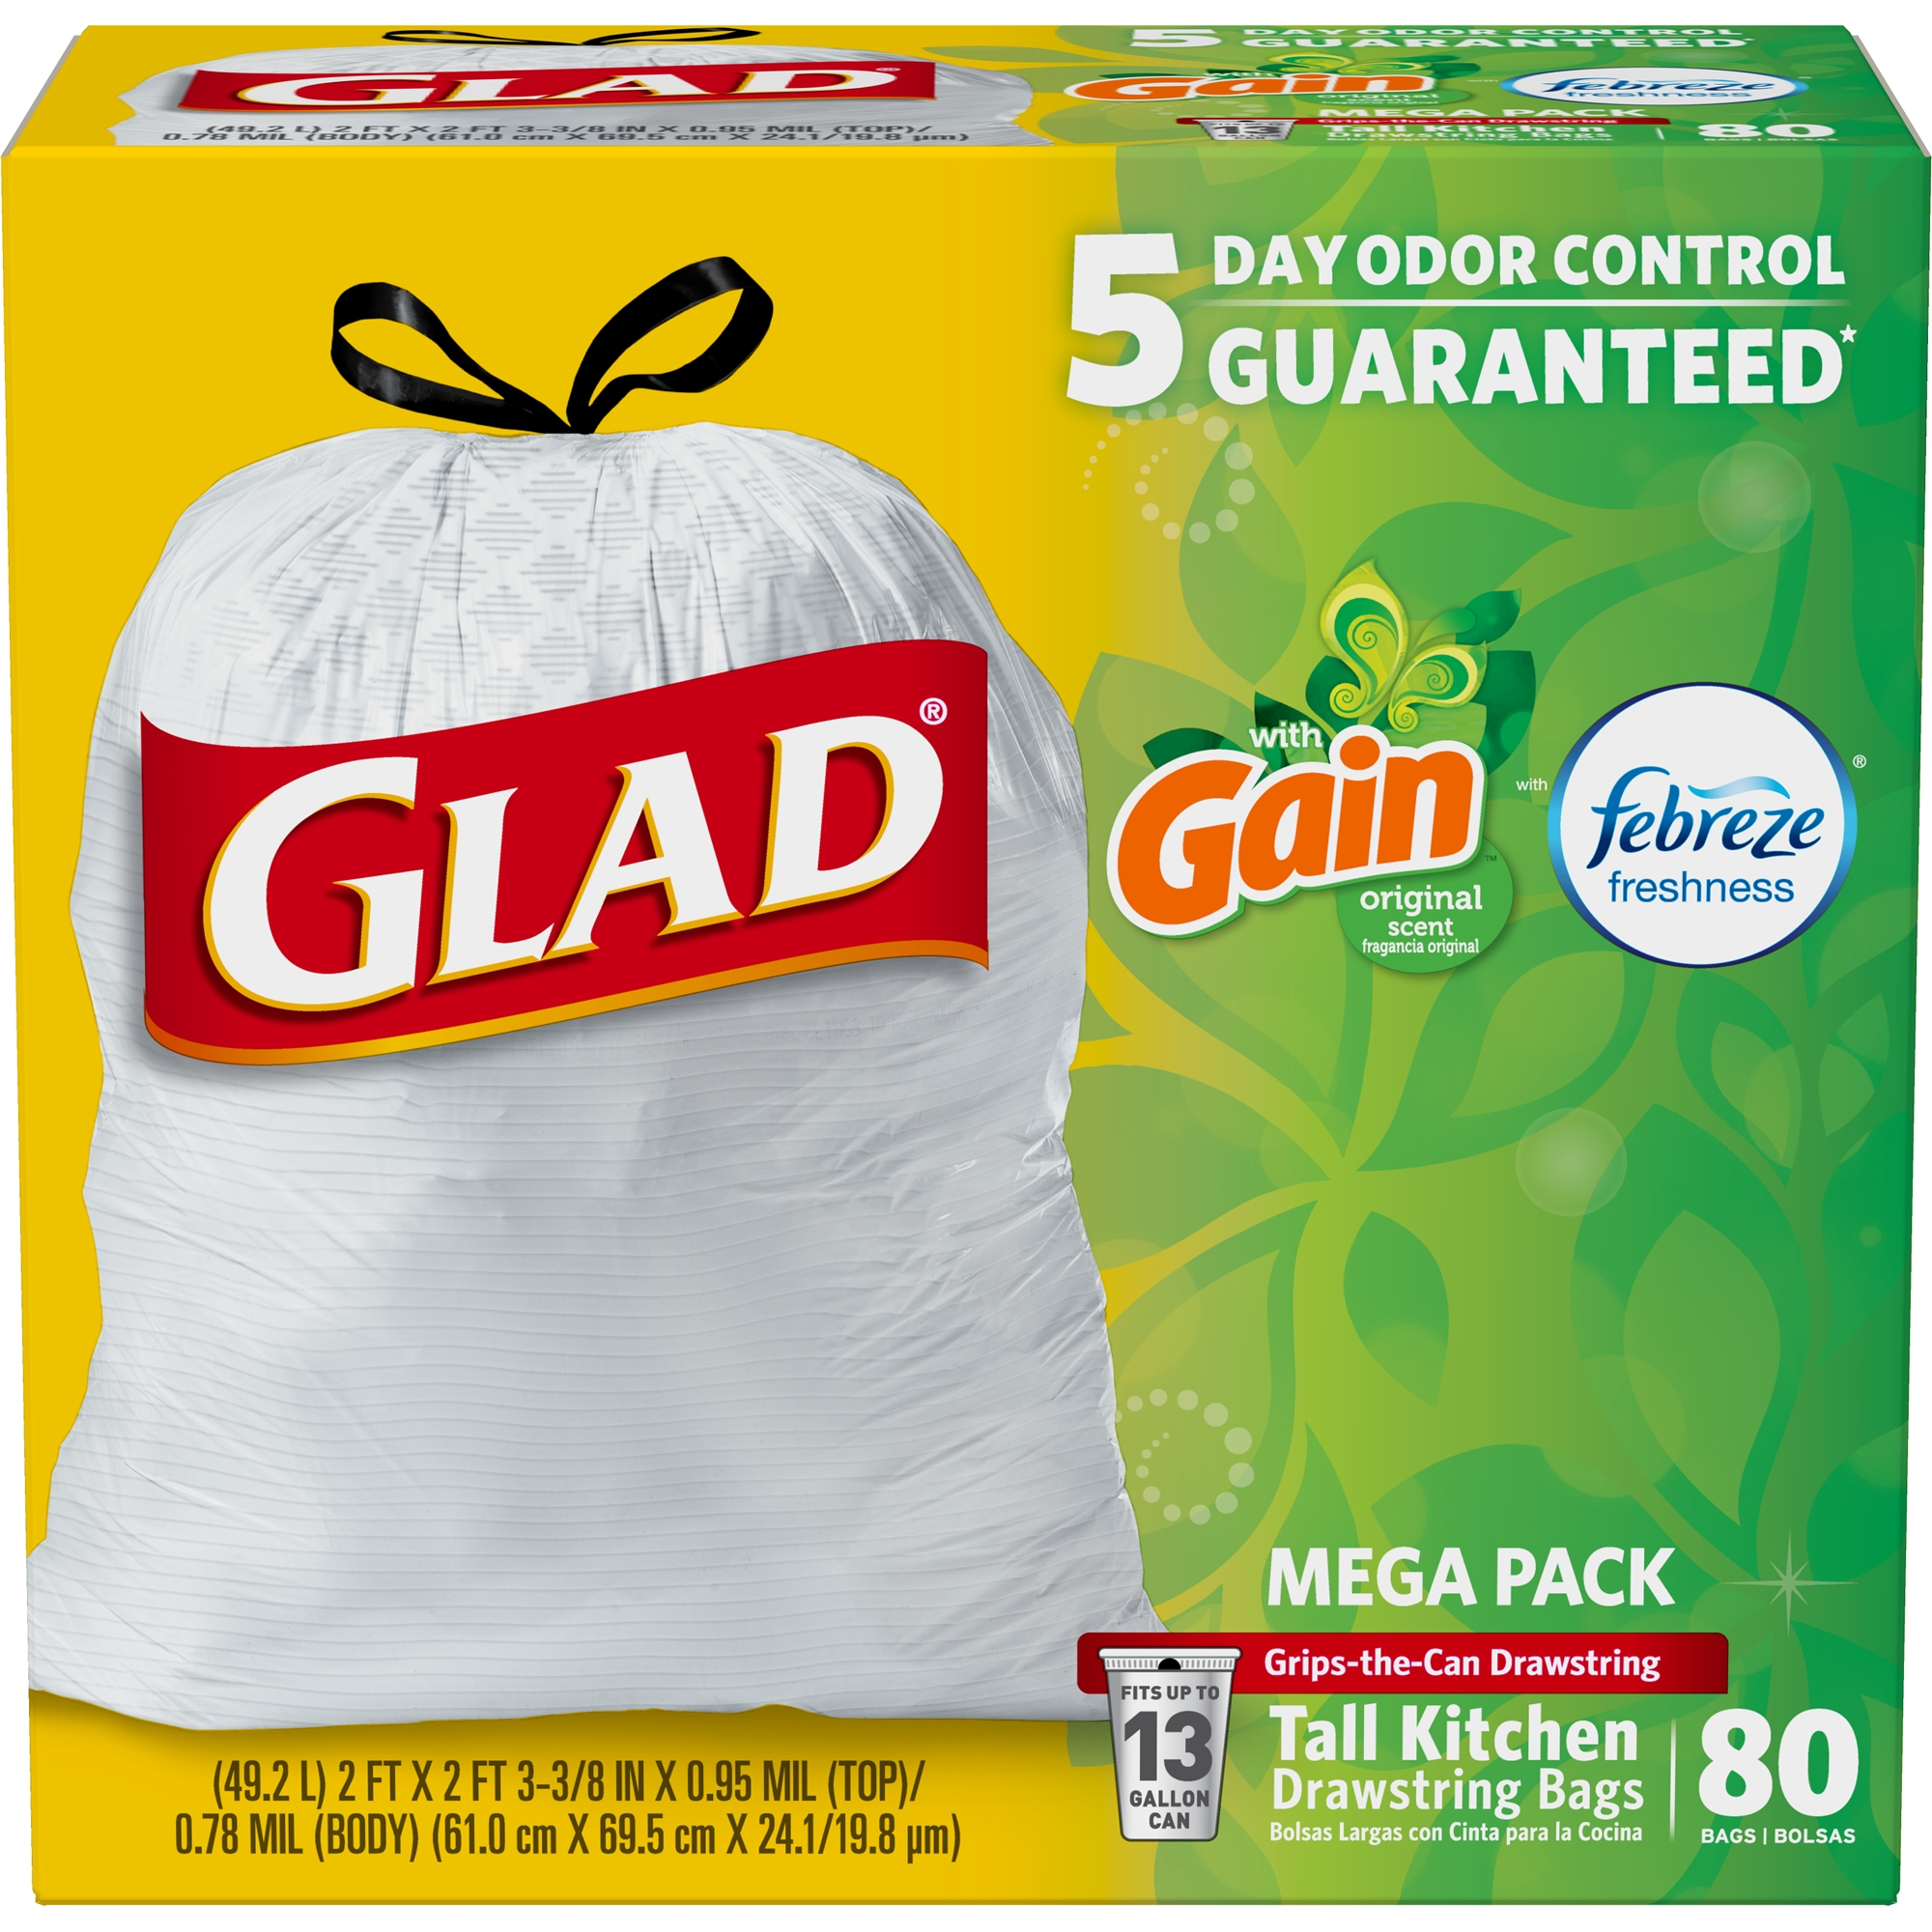 Glad OdorShield Tall Kitchen Drawstring Trash Bags, Gain Original with Febreze Freshness, 13 Gallon, 80 Count